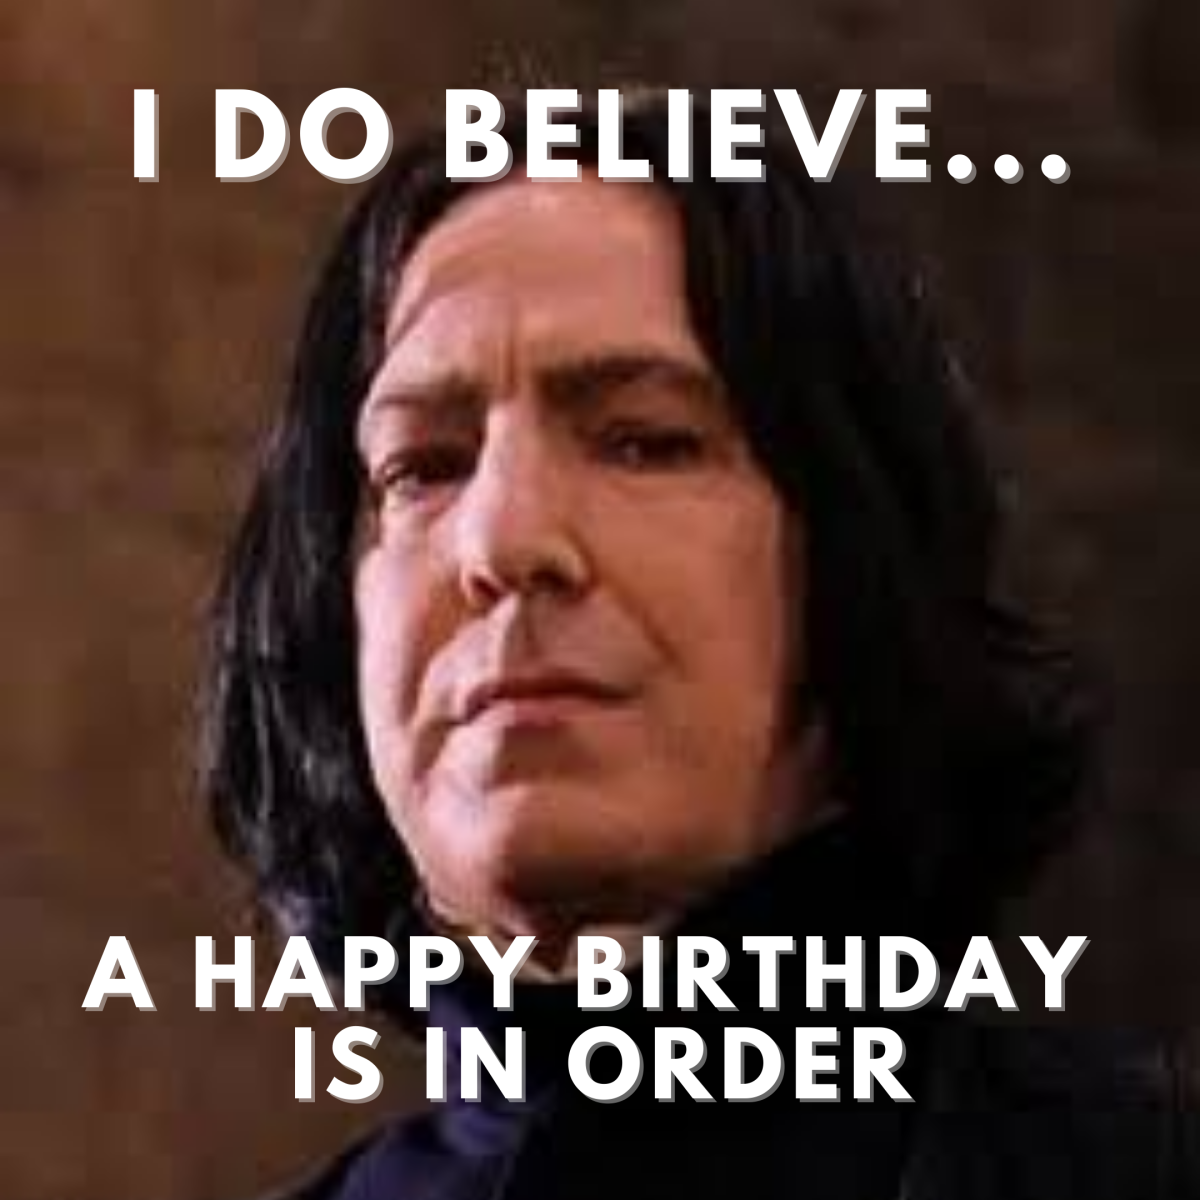 I do believe a happy birthday is in order.